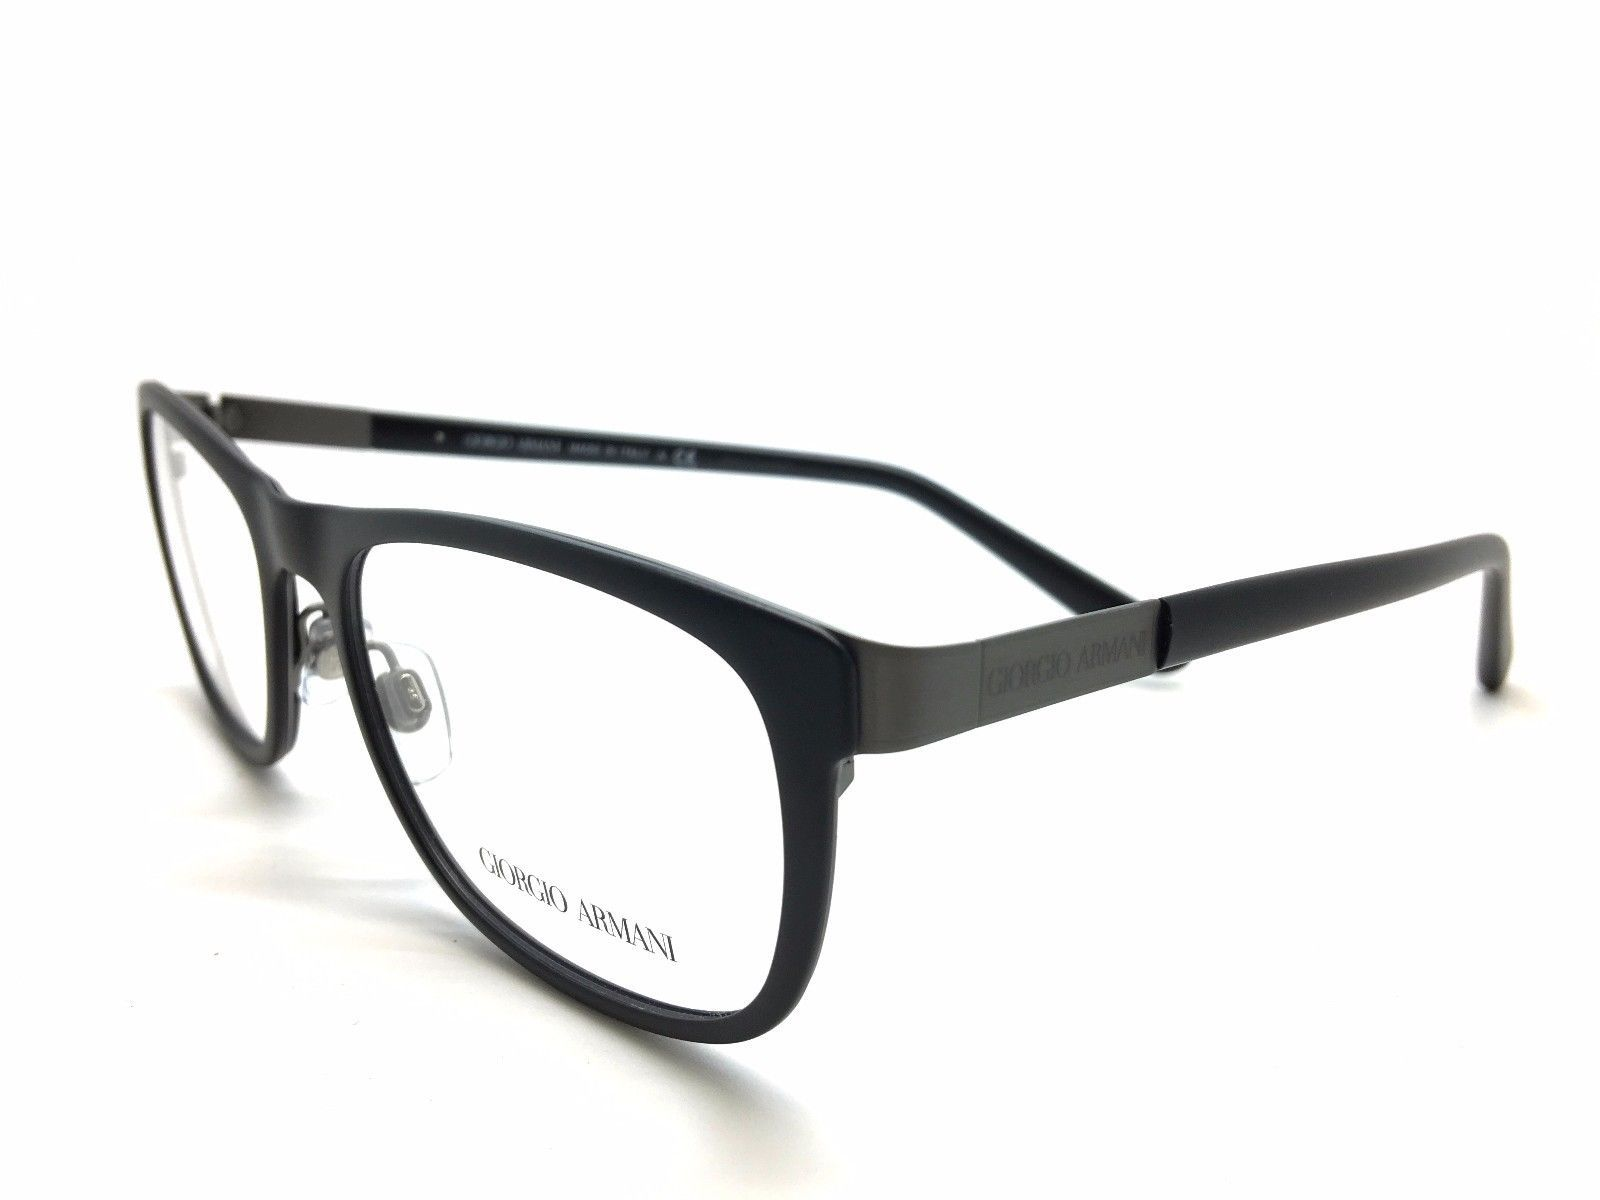 9a24567a9d7 New GIORGIO ARMANI Eyeglasses AR 5012 3003 and 50 similar items. 57